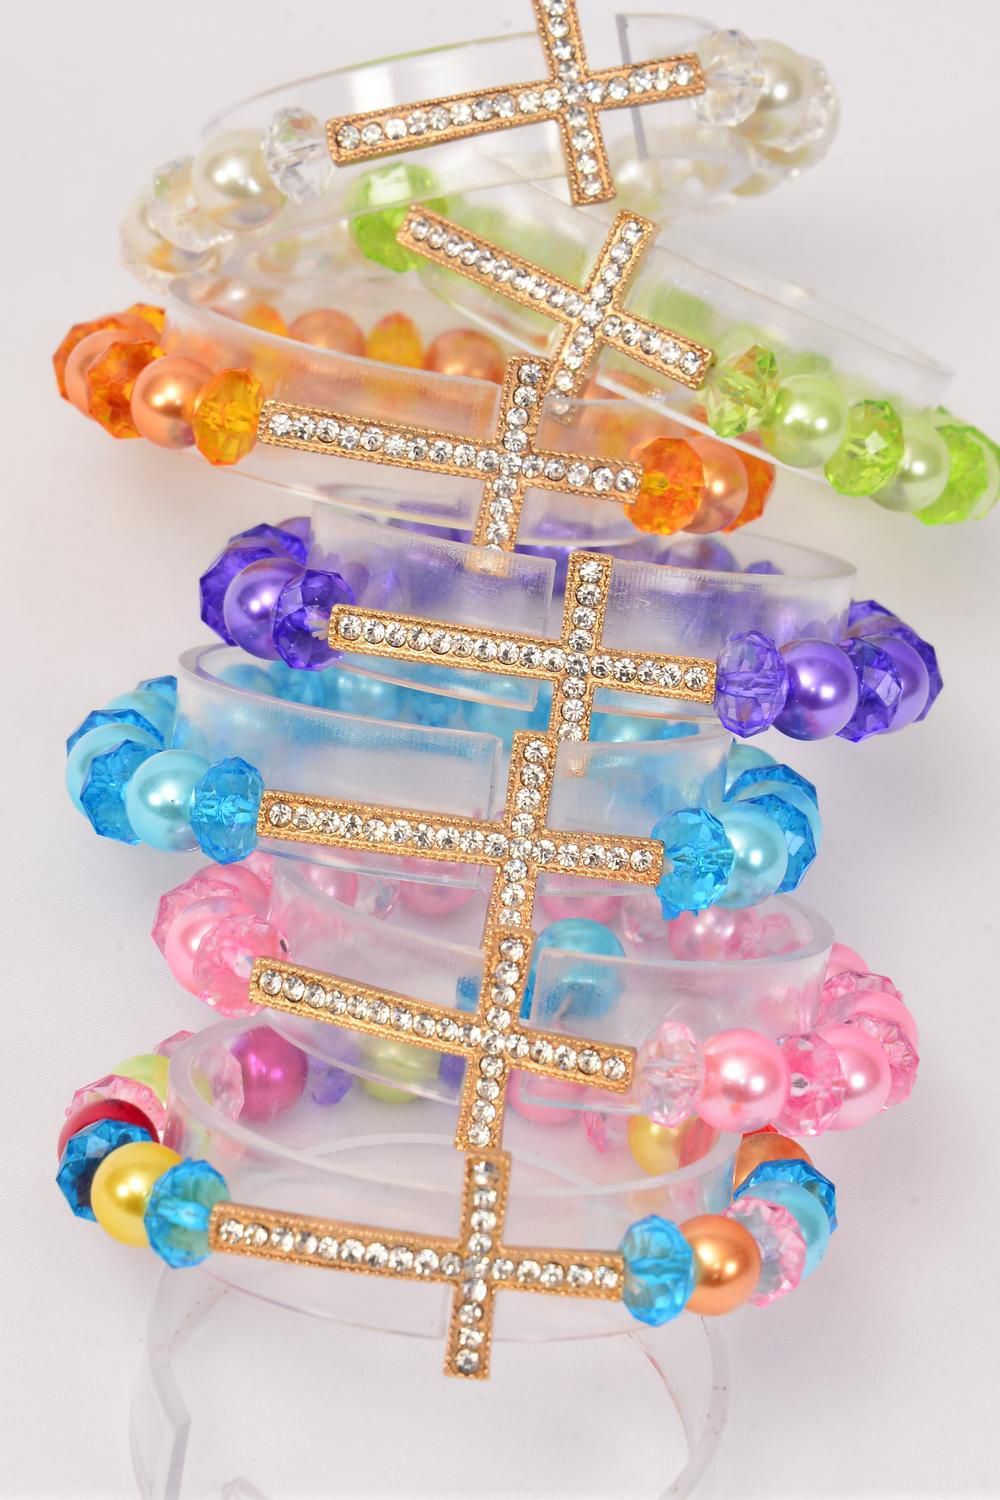 "Bracelet Glass Pearl 10 mm W Clear Rhinestone Sideways Cross/DZ **Stretch** Cross-1.75""x 1"" wide, 2 Multi,2 Purple,2 Cream,2 Pink,2 Blue,1 Lime,1 Orange,7 Color Asst,hang Tag & OPP bag & UPC Cod -"